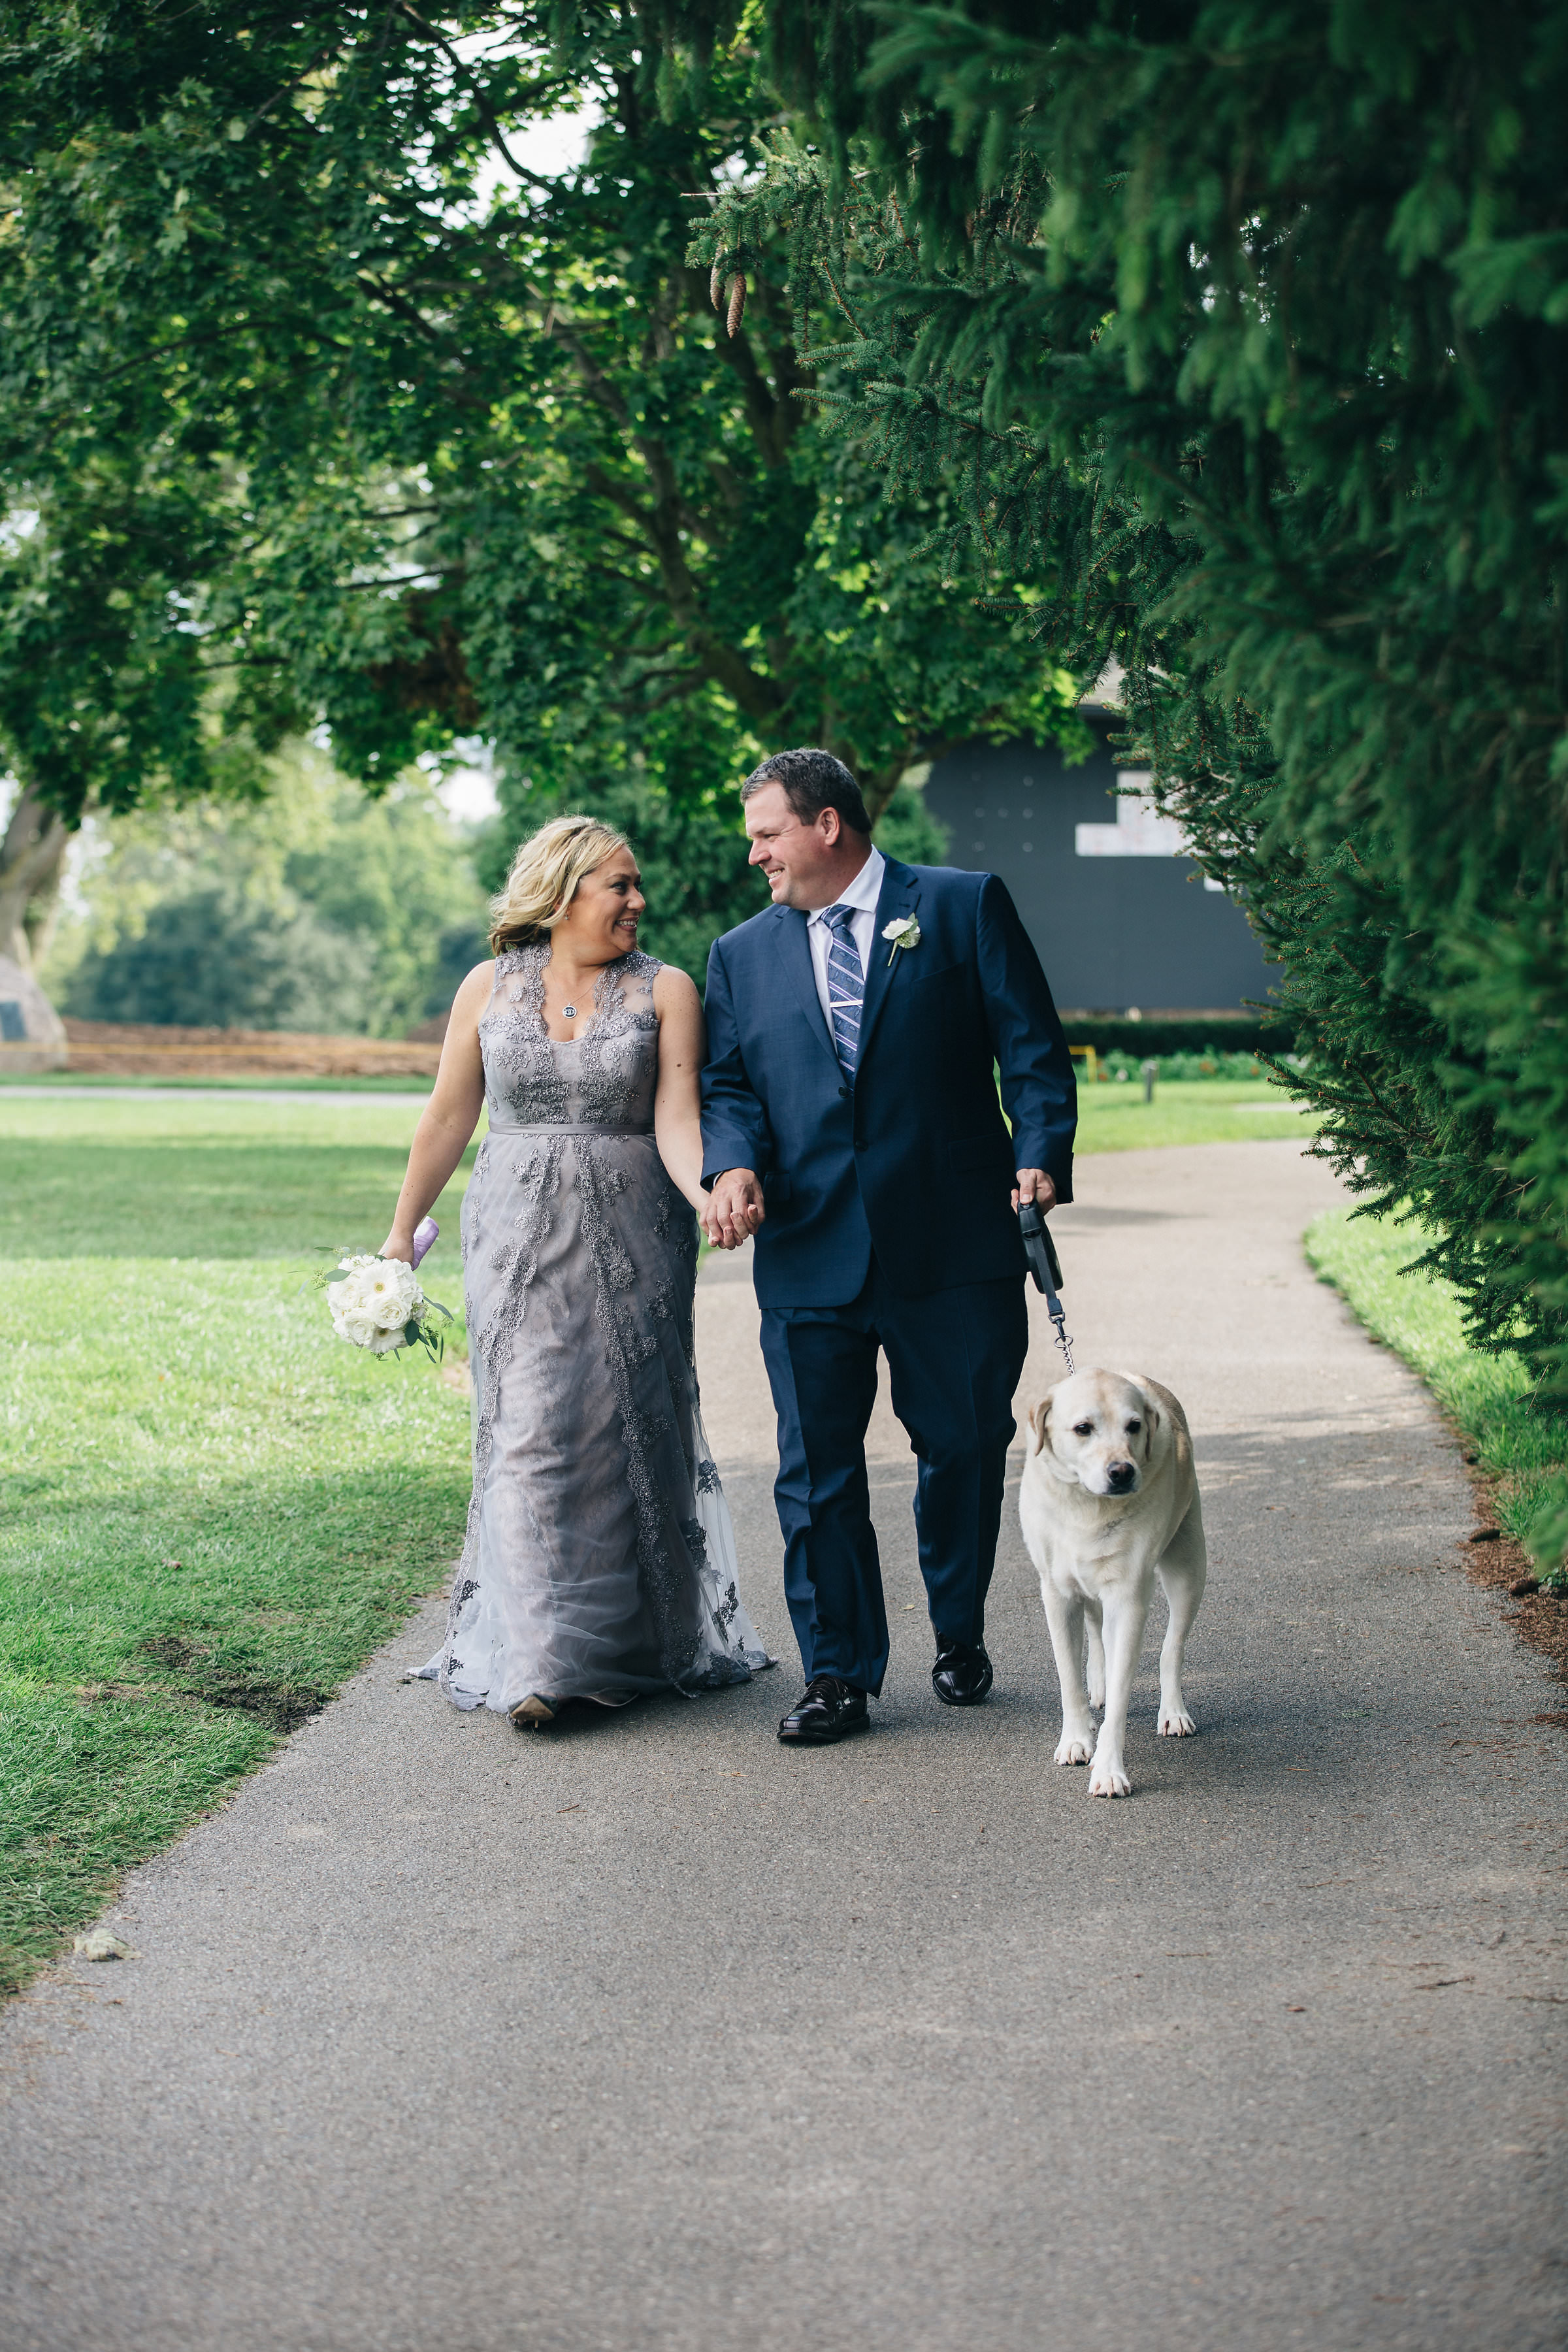 Bride and groom with dog on wedding day.